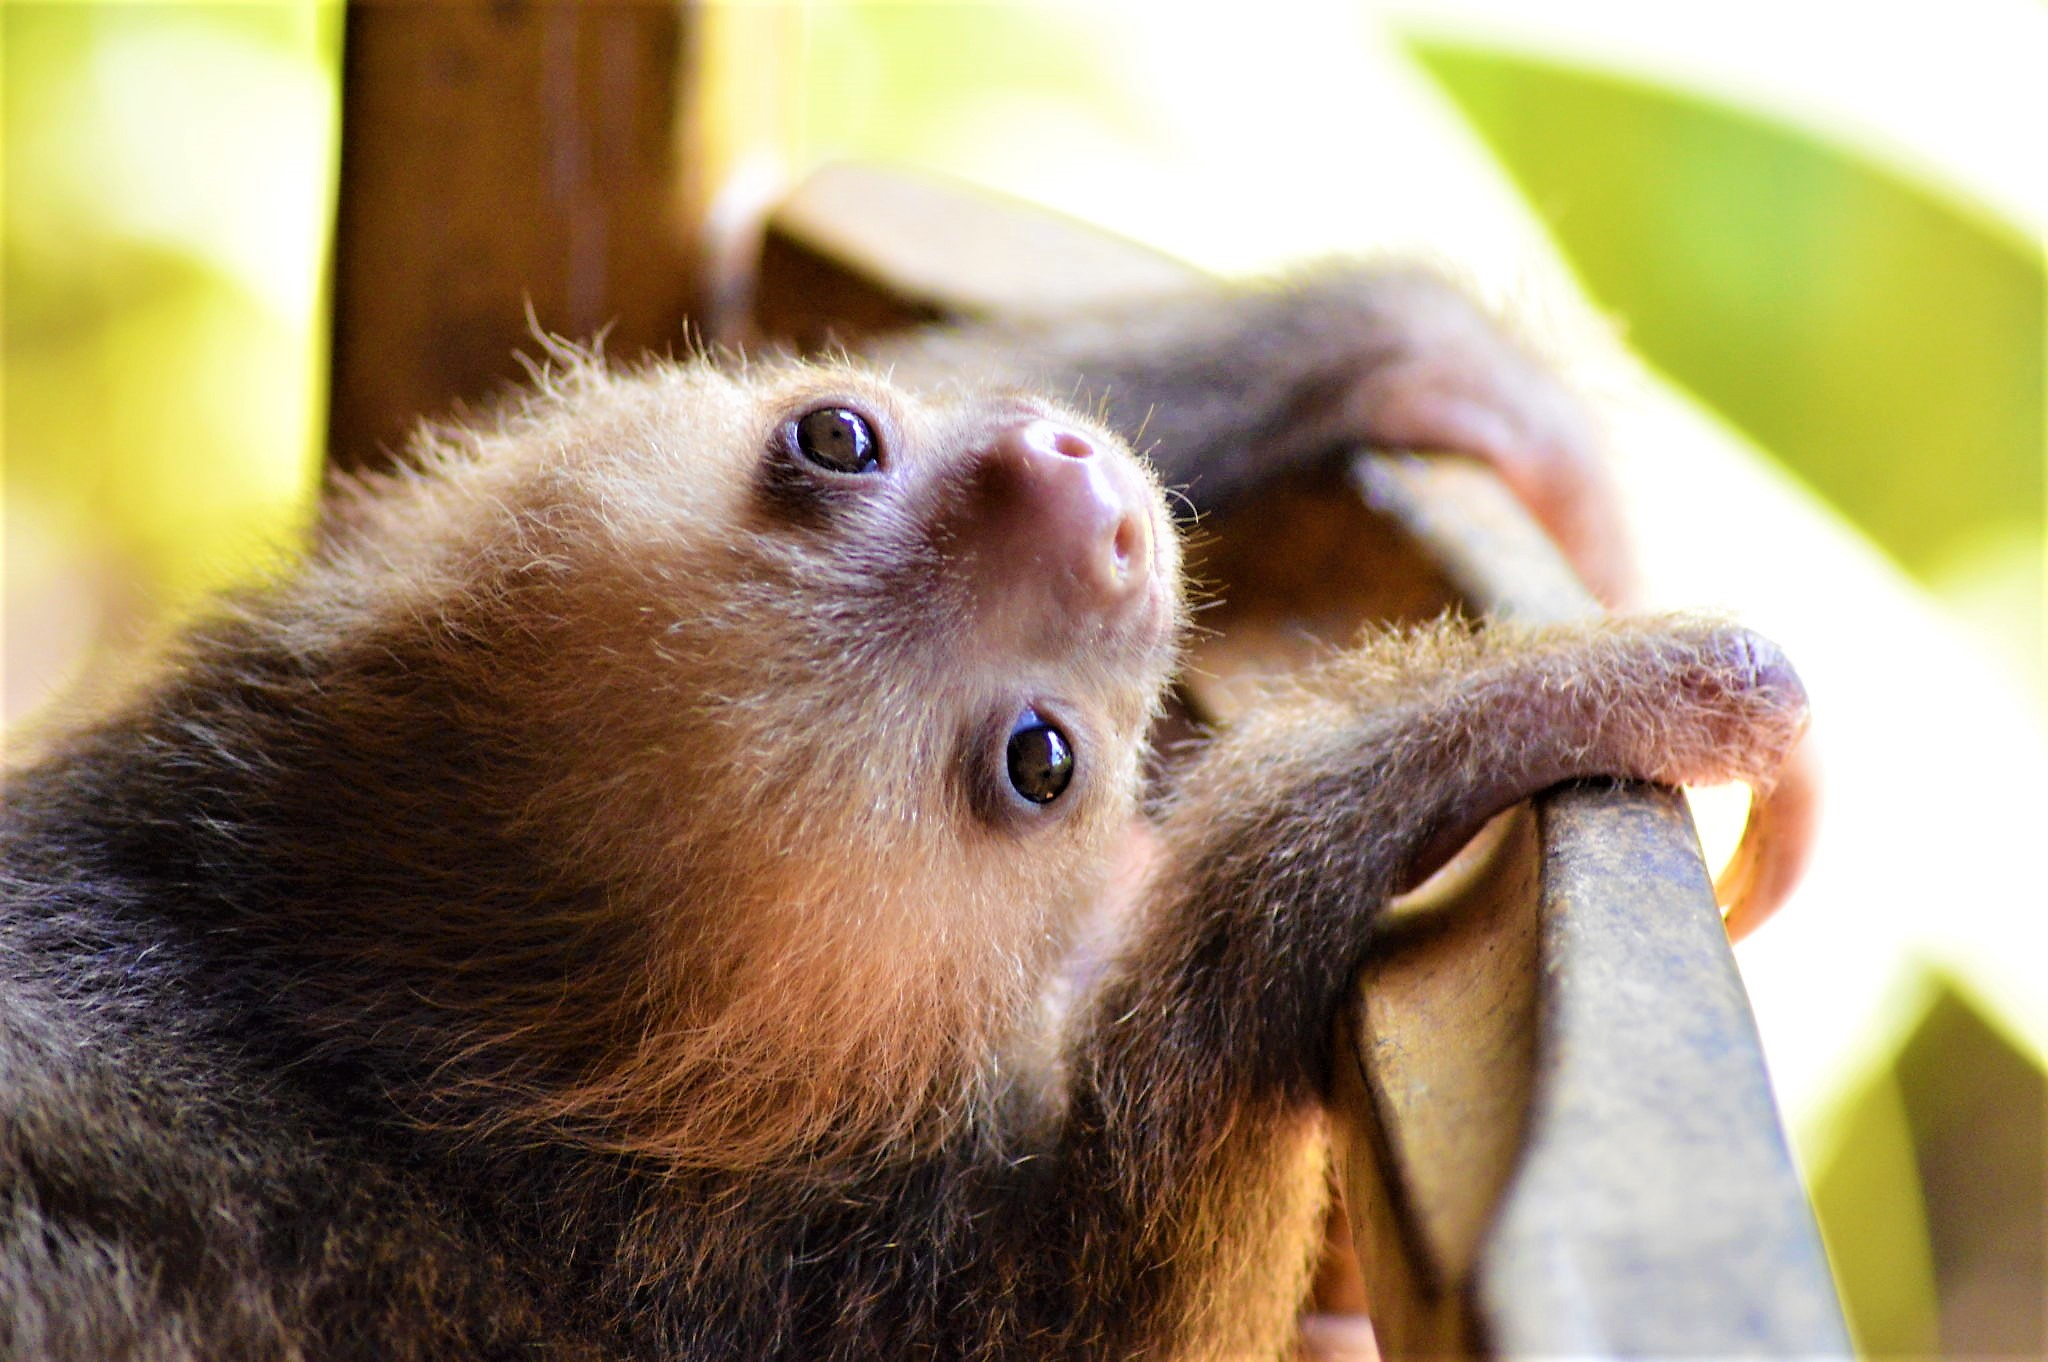 baby sloth on chair, Costa rica